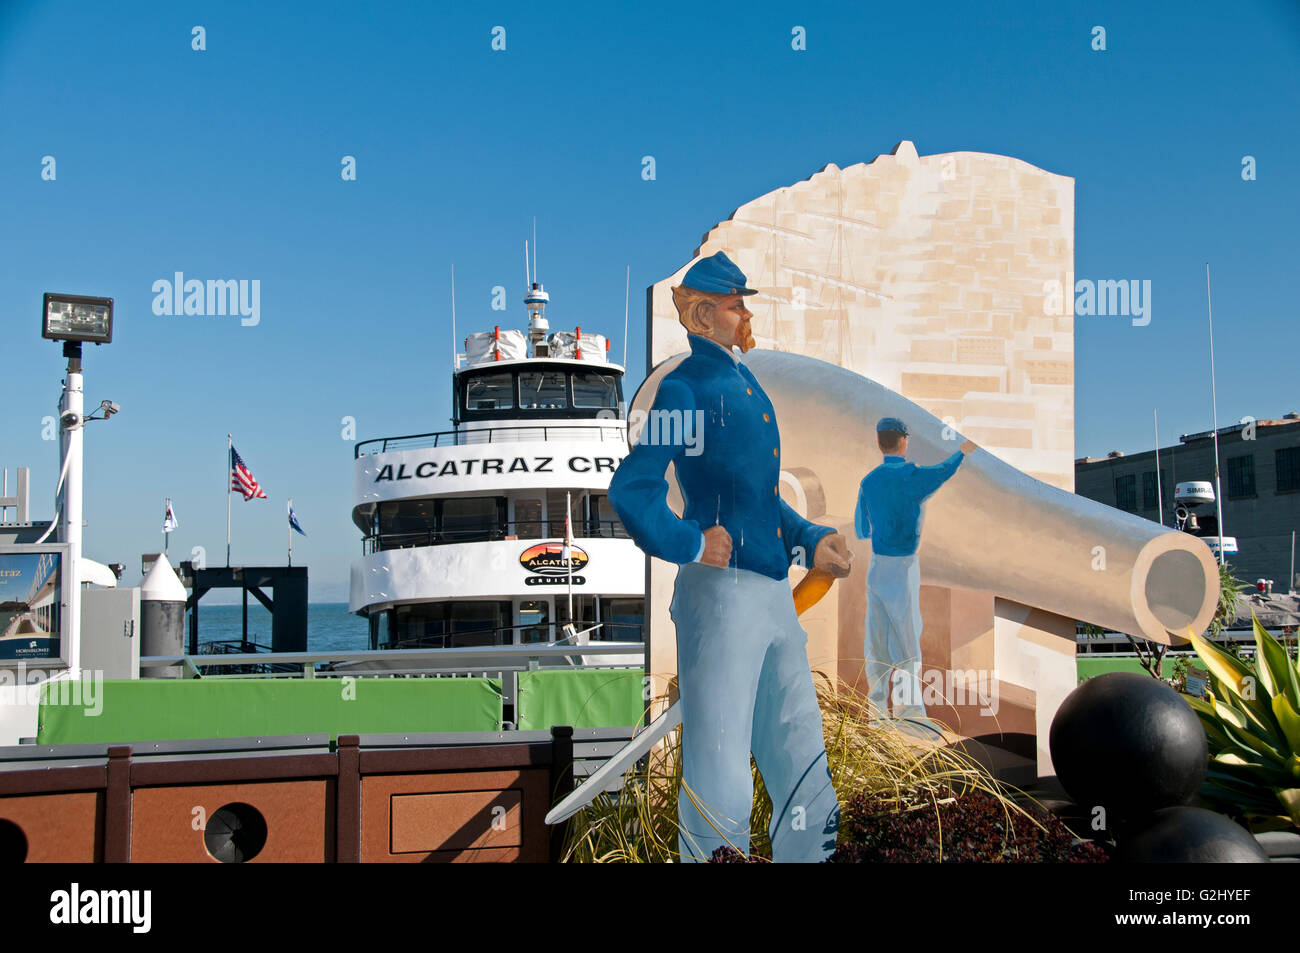 A display for Hornblower Alcatraz Island tour, for the National Park Service, featured on Pier 33 at San Francisco - Stock Image